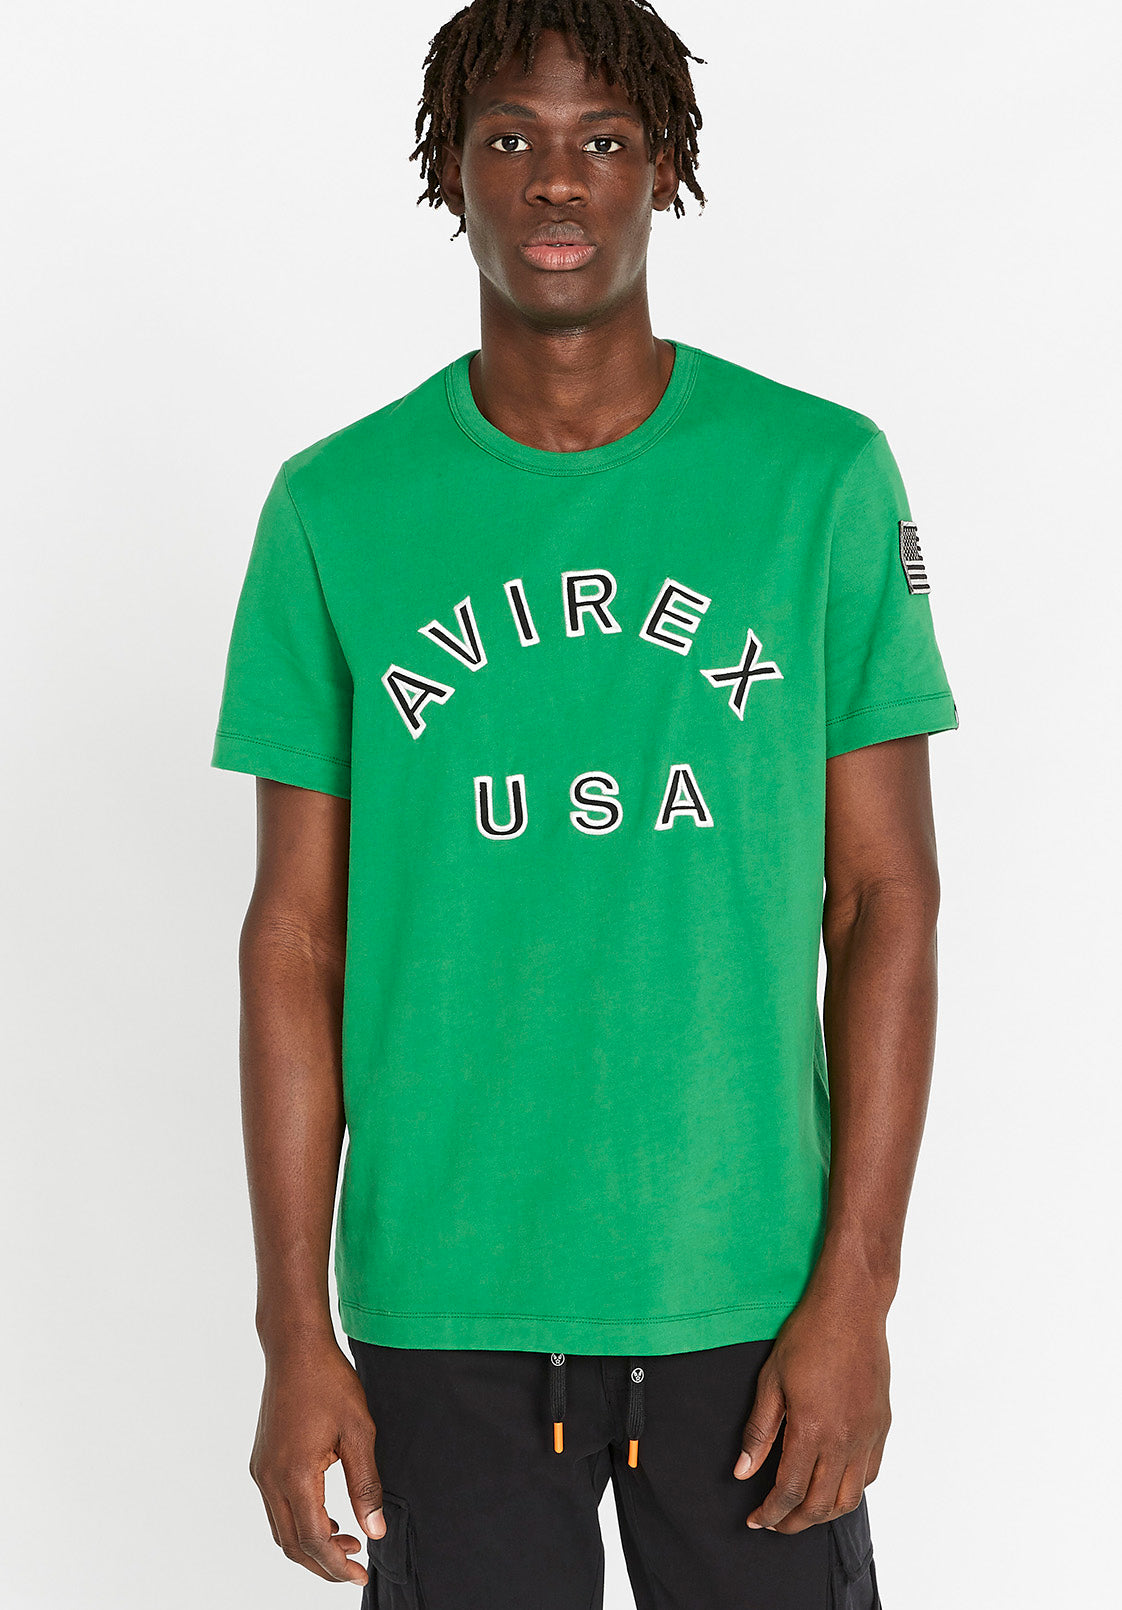 Men wearing a green t-shirt with Avirex USA embroidery in black & white on front chest